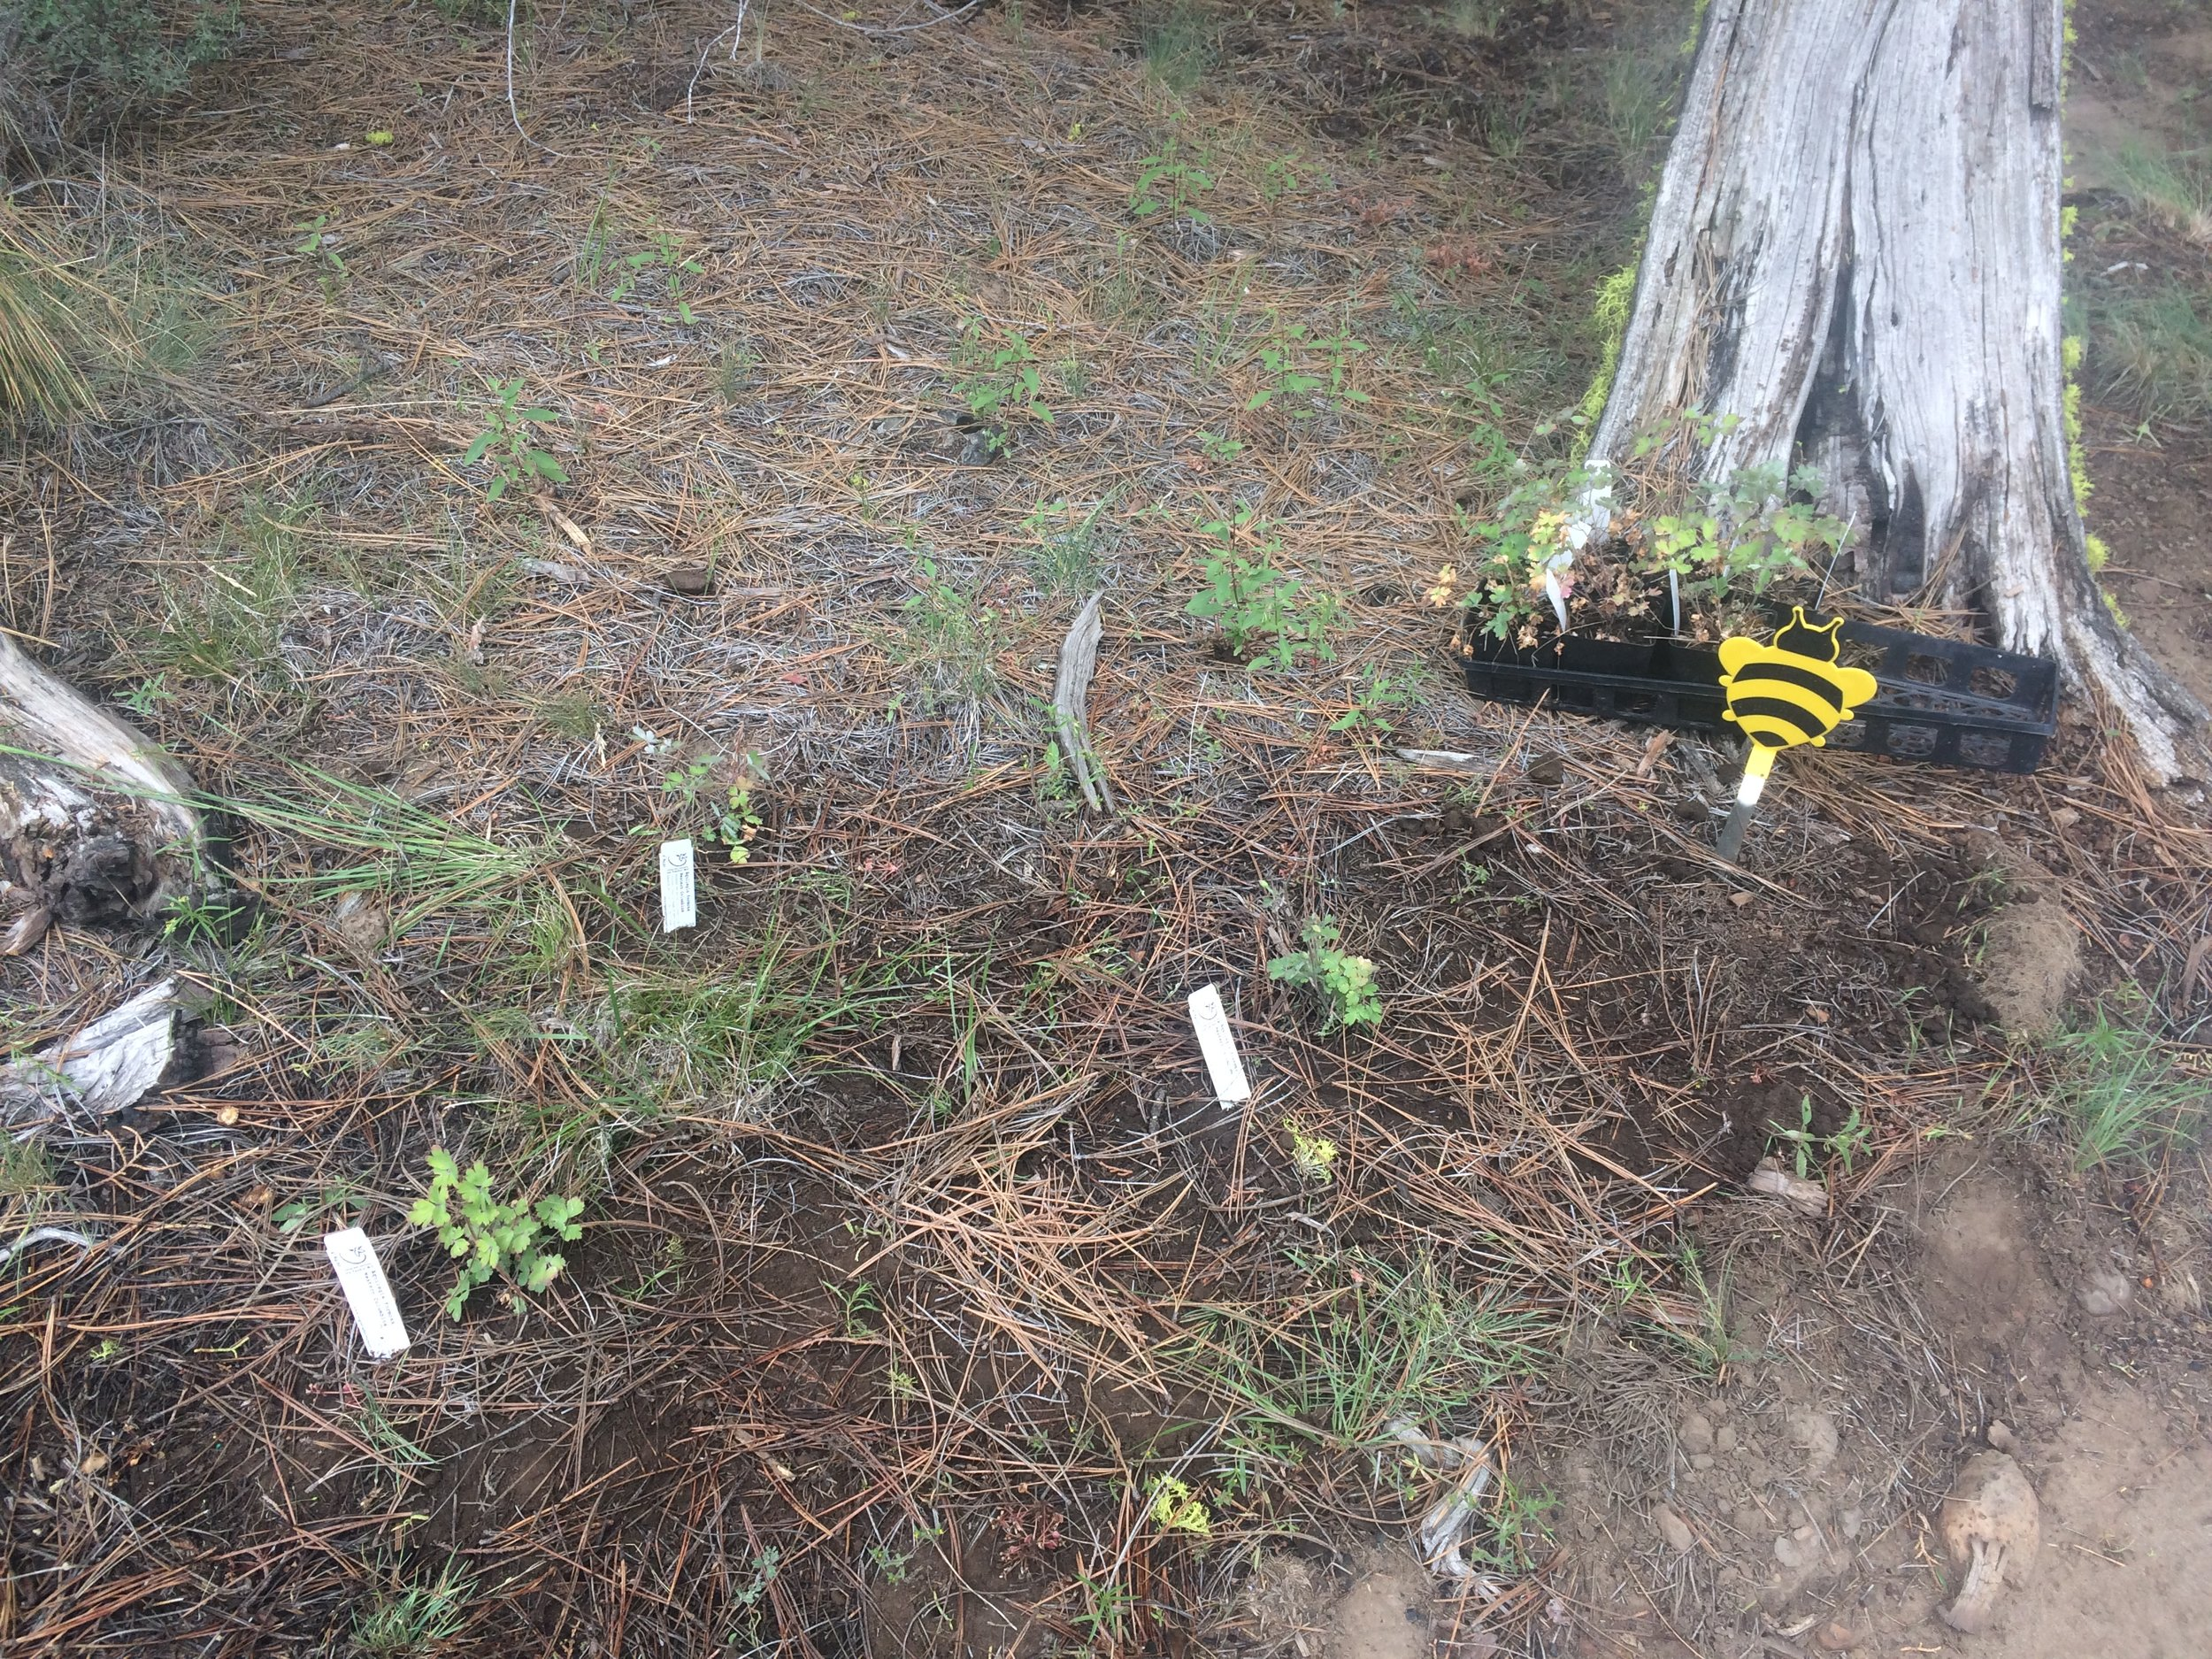 We are planting native wildflowers and trees to supplement the pollen and nectar sources available for bees and local native pollinators. We planted two small patches of native columbine along the path to the apiary (and there's already a bunch growing on the land).